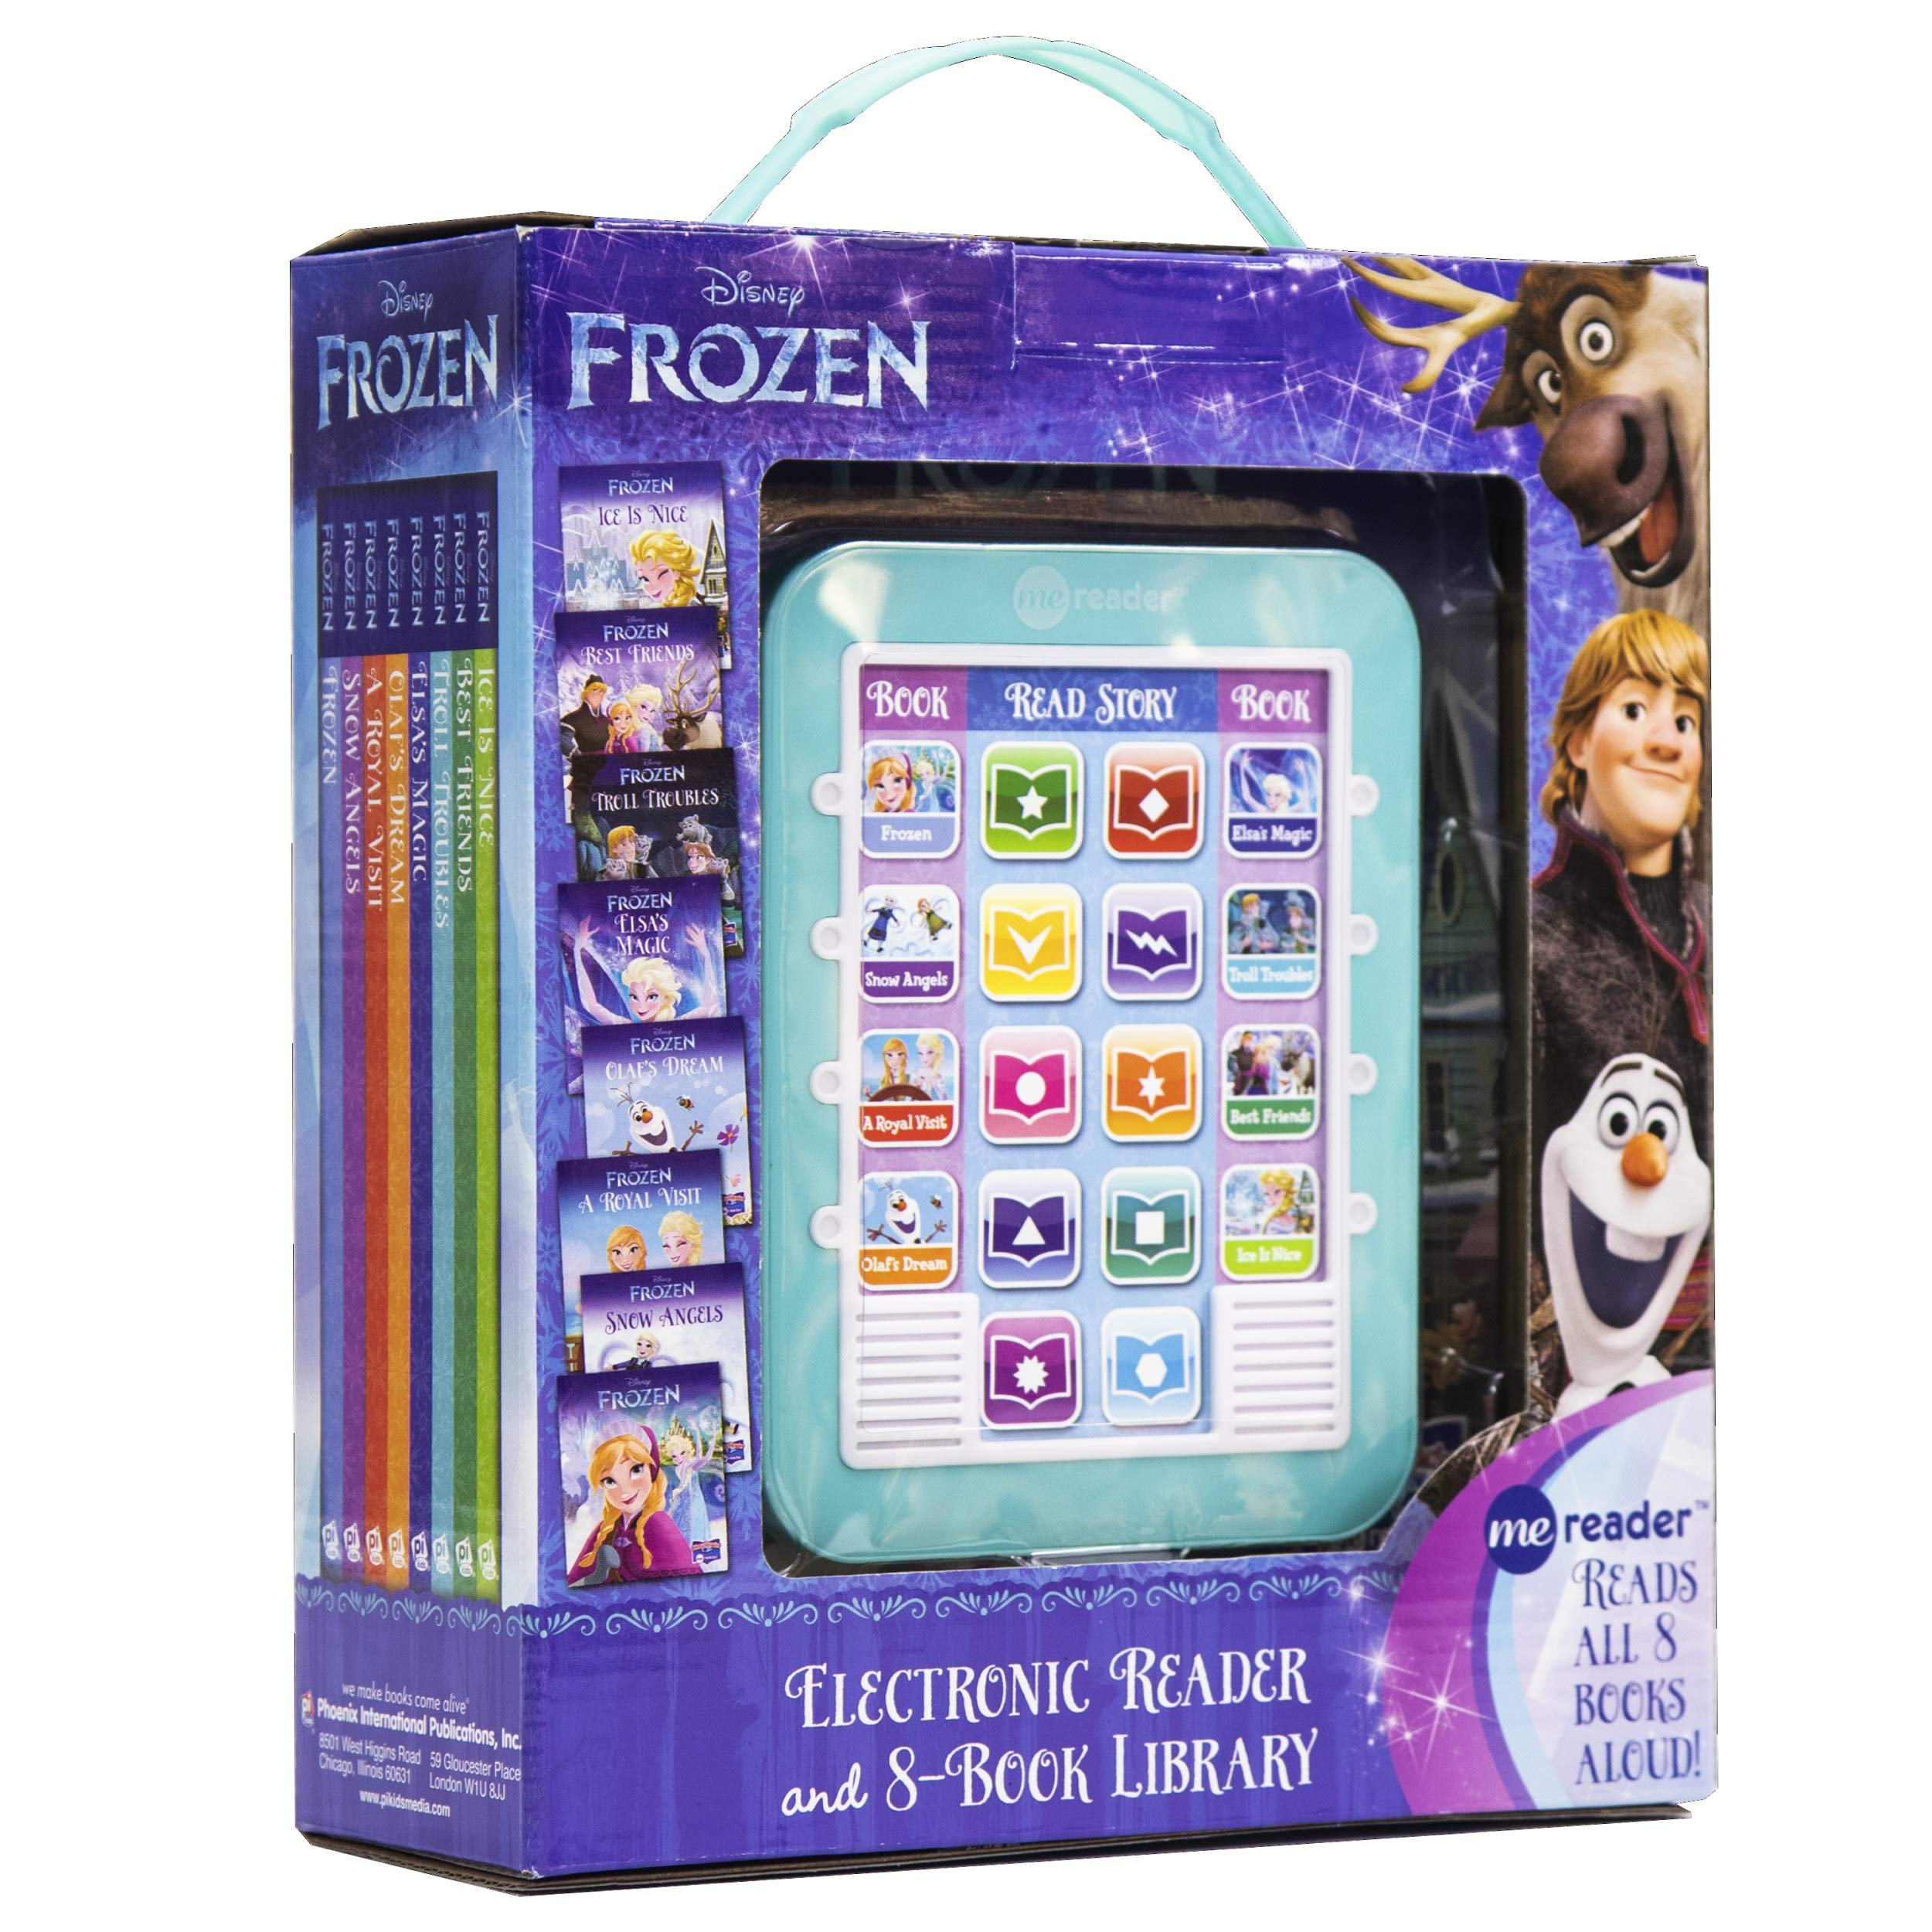 Disney - Frozen Me Reader Electronic Reader